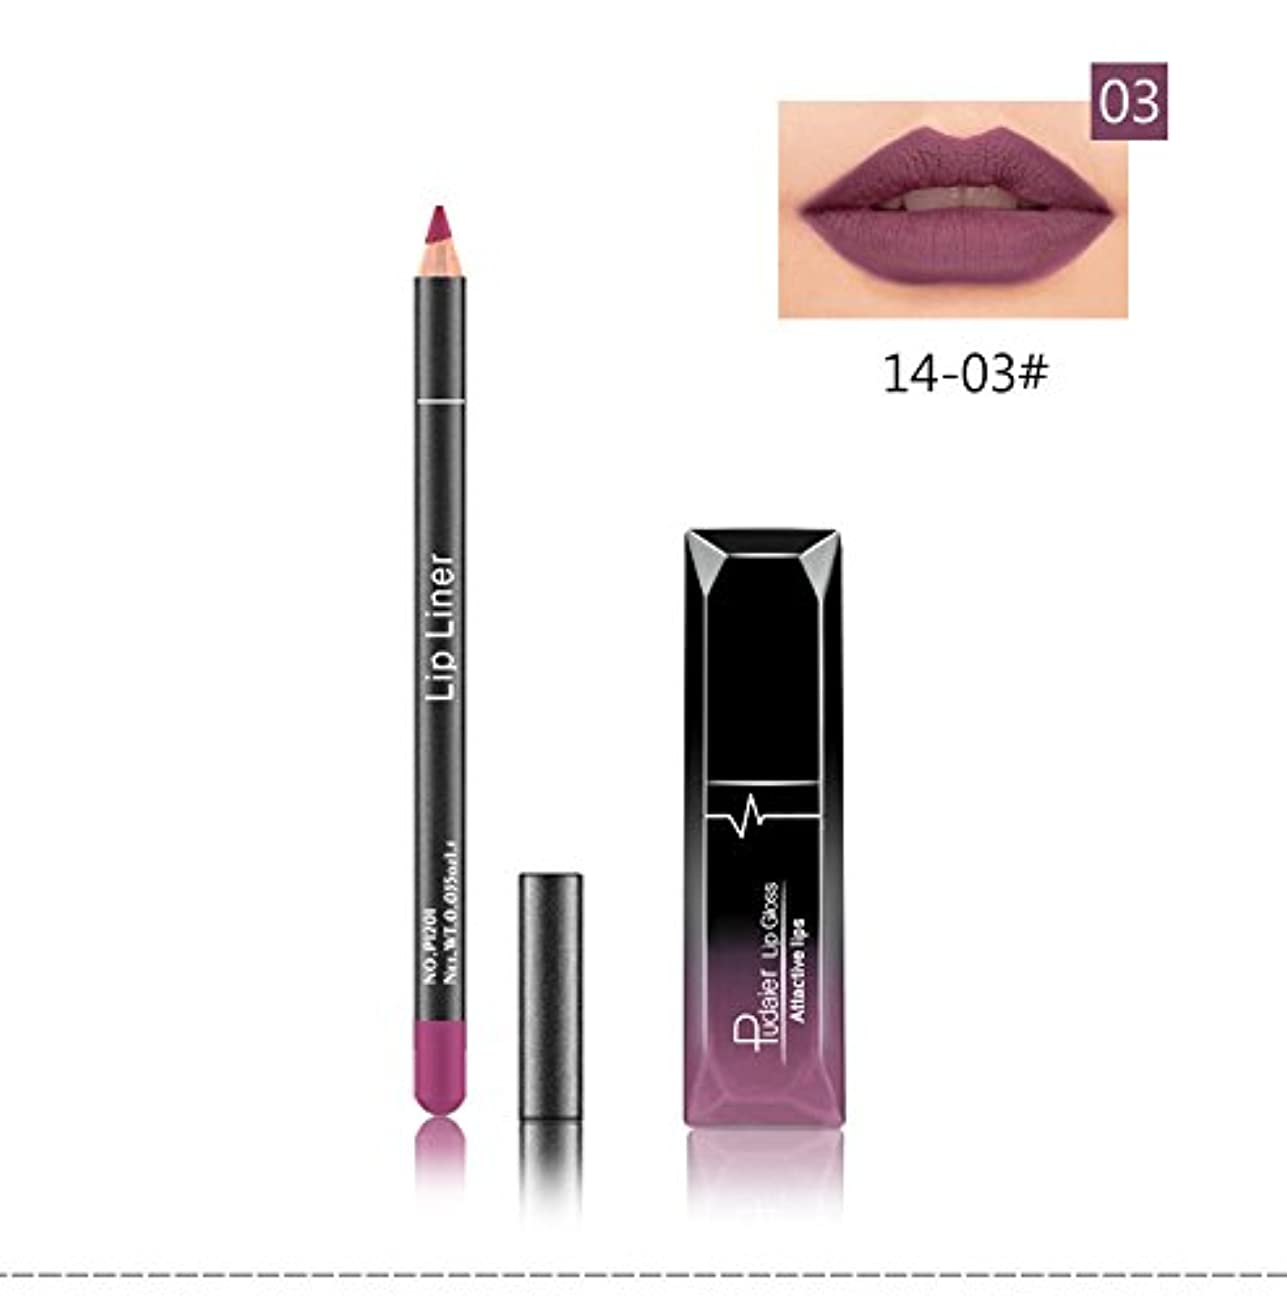 思われる物理学者ブラウス(03) Pudaier 1pc Matte Liquid Lipstick Cosmetic Lip Kit+ 1 Pc Nude Lip Liner Pencil MakeUp Set Waterproof Long...